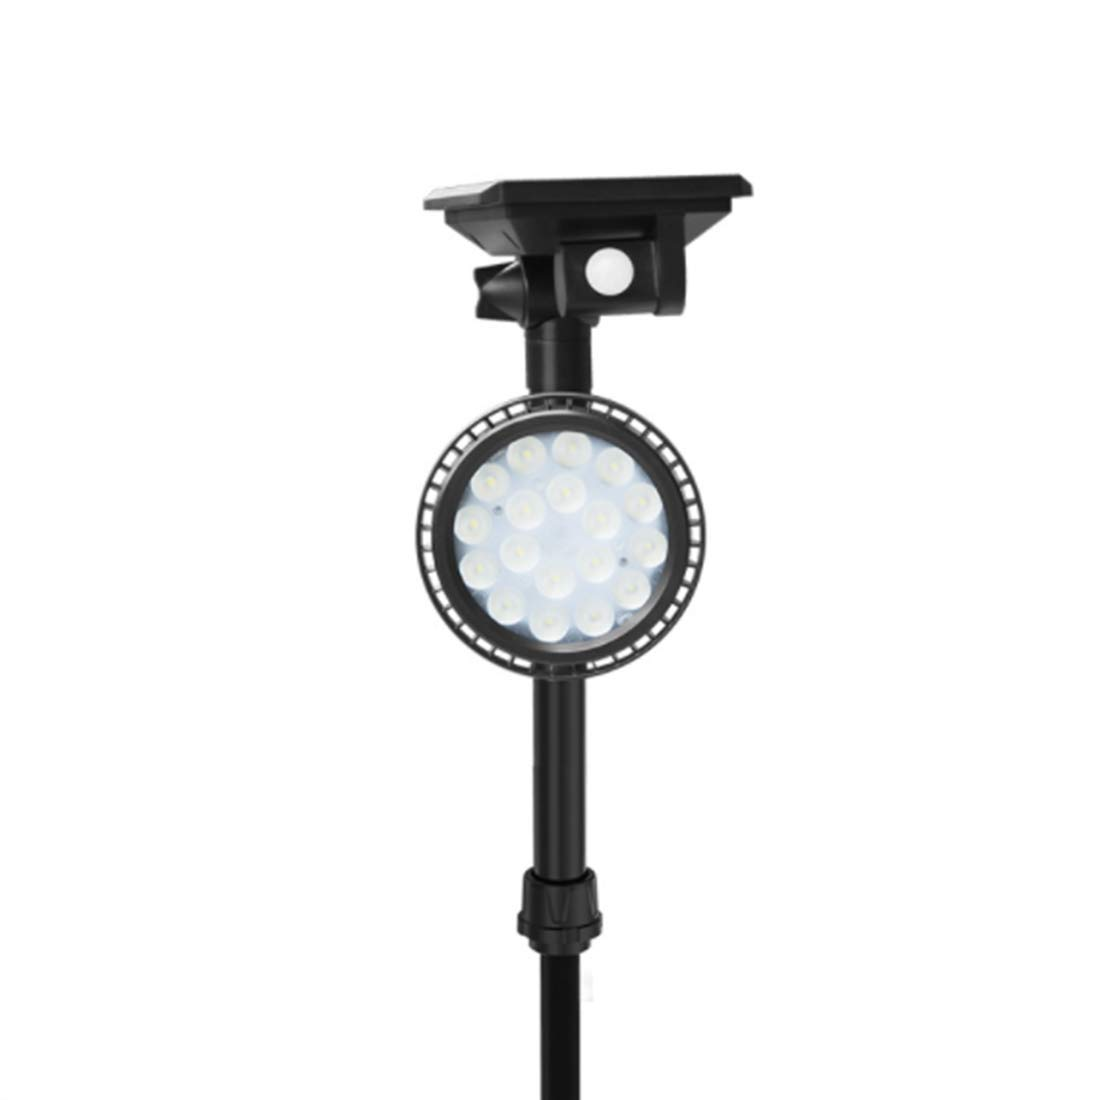 Sububblepper Solar Lights Outdoor, 18 LEDs Waterproof Solar Spotlight Adjustable Wall Light 4 Modes Cold White Security Lights for Patio, Deck, Yard, Garden (Color : Cold White)